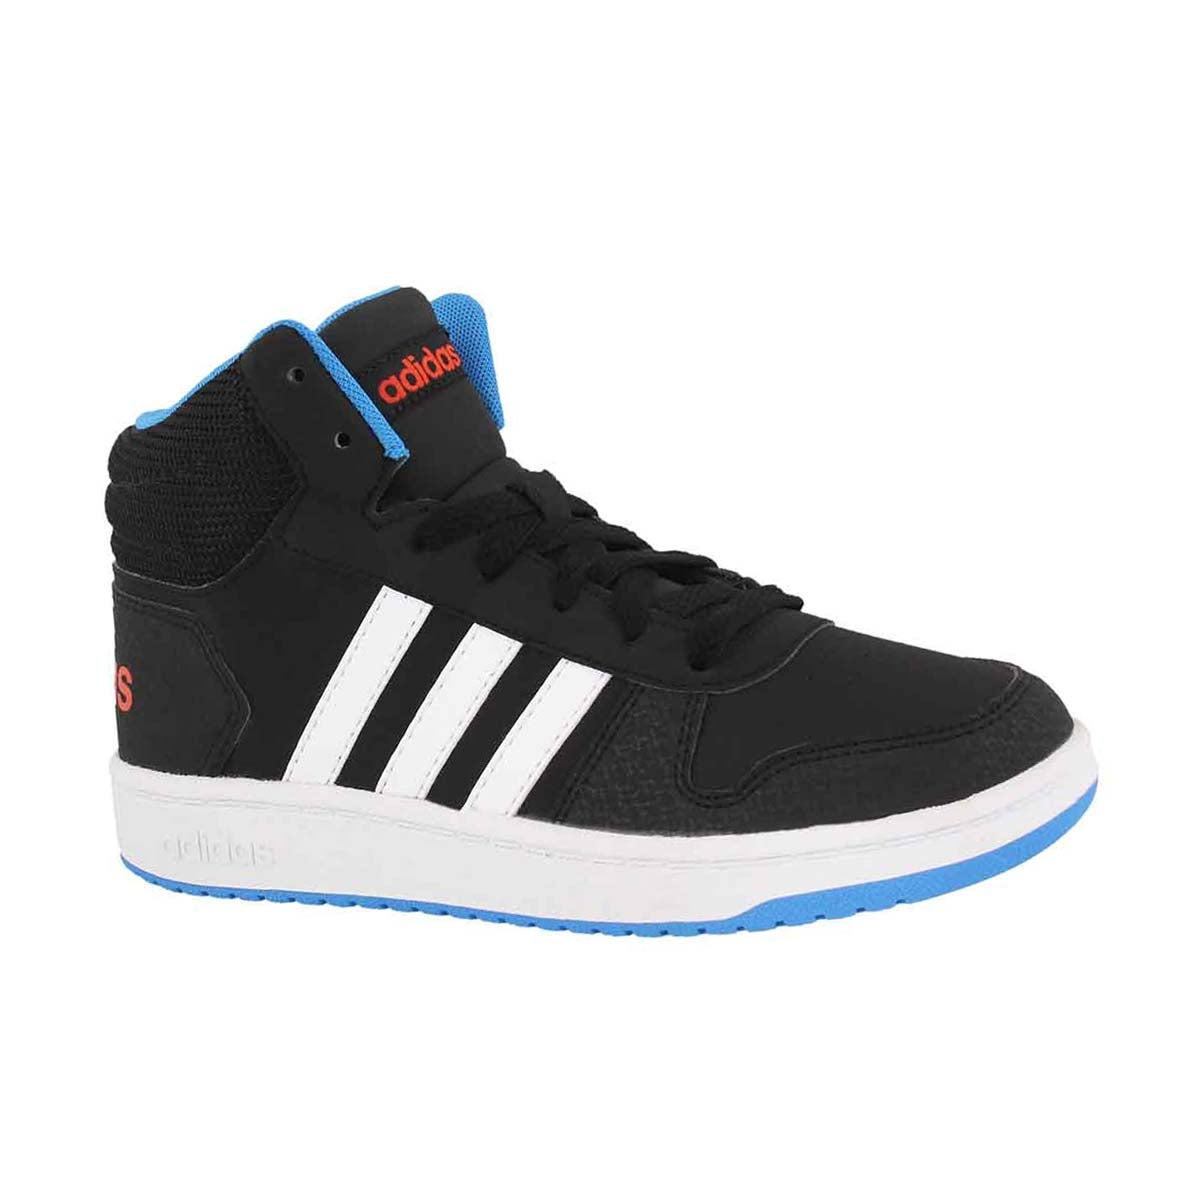 Boys' V5 HOOPS MID 2.0 black/blue sneakers